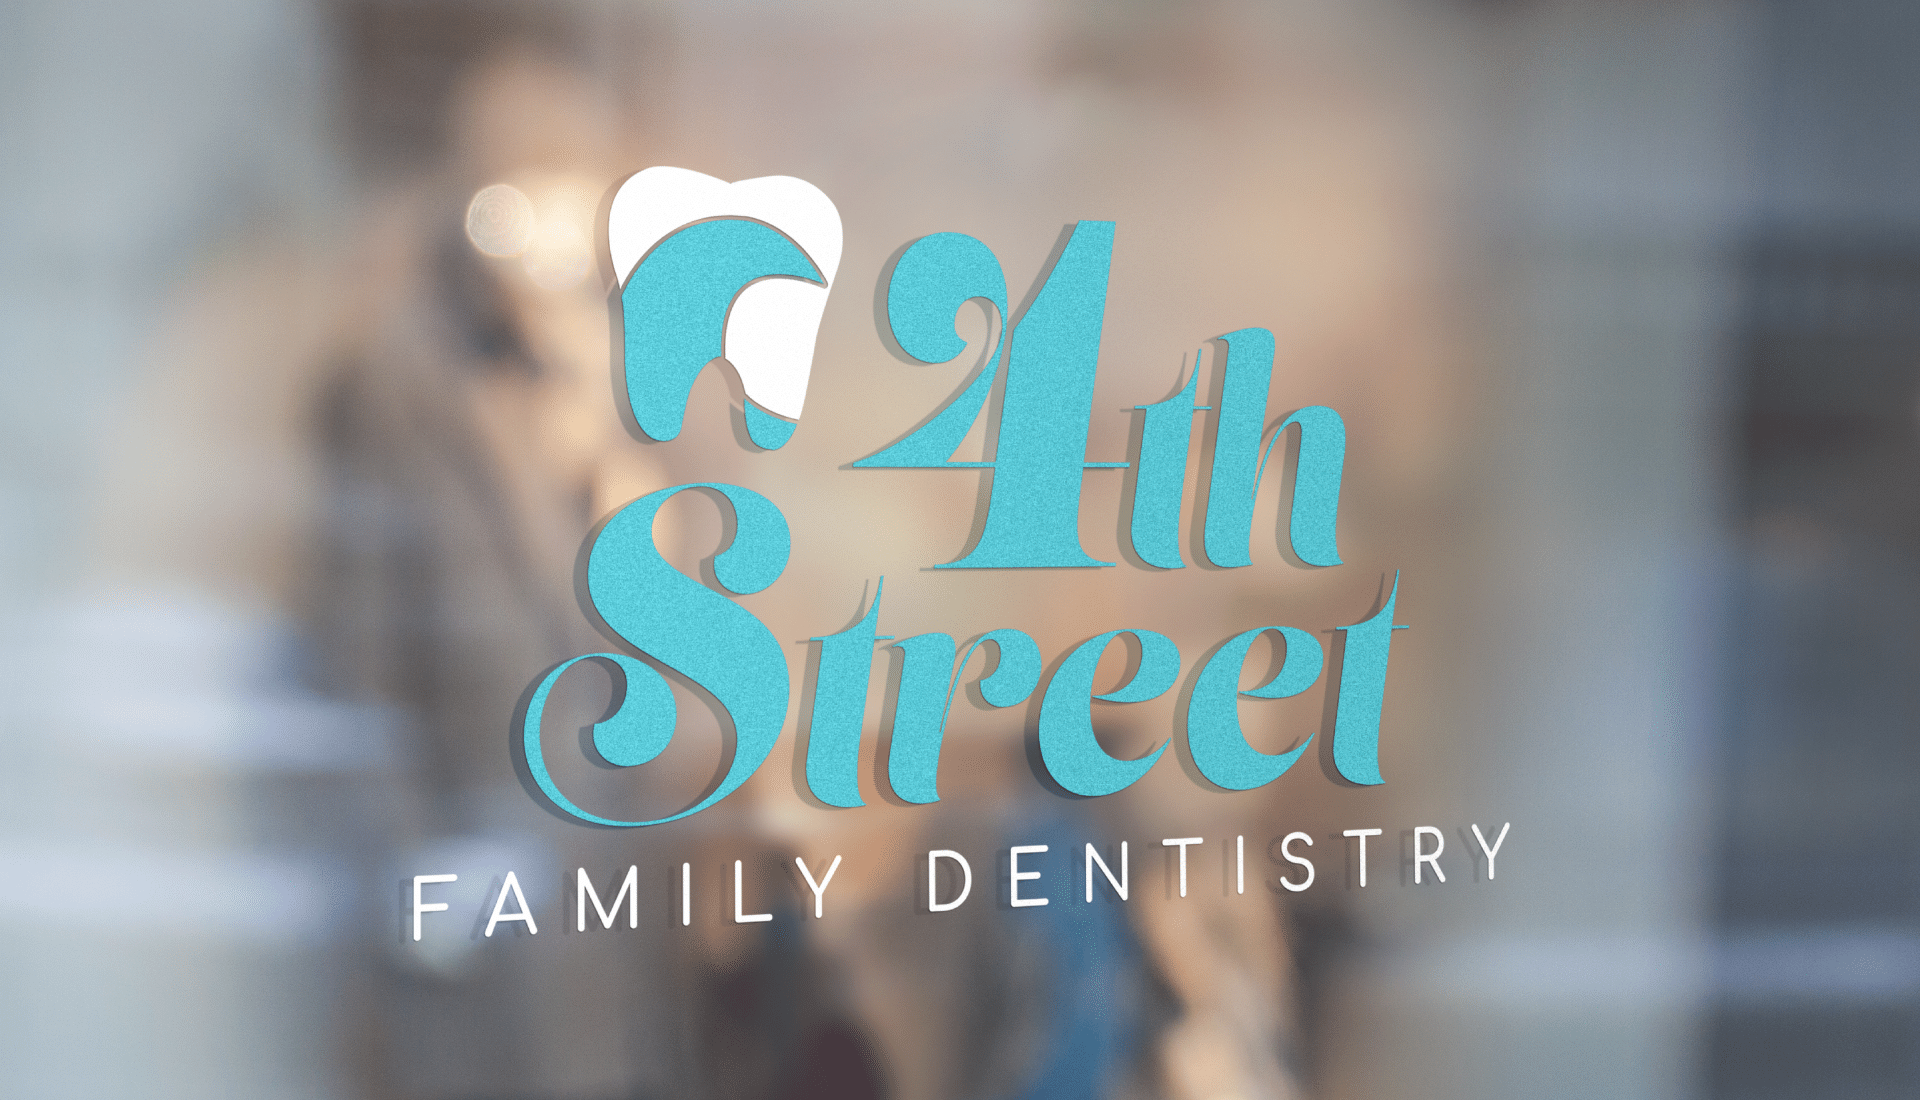 4th street family dentistry logos